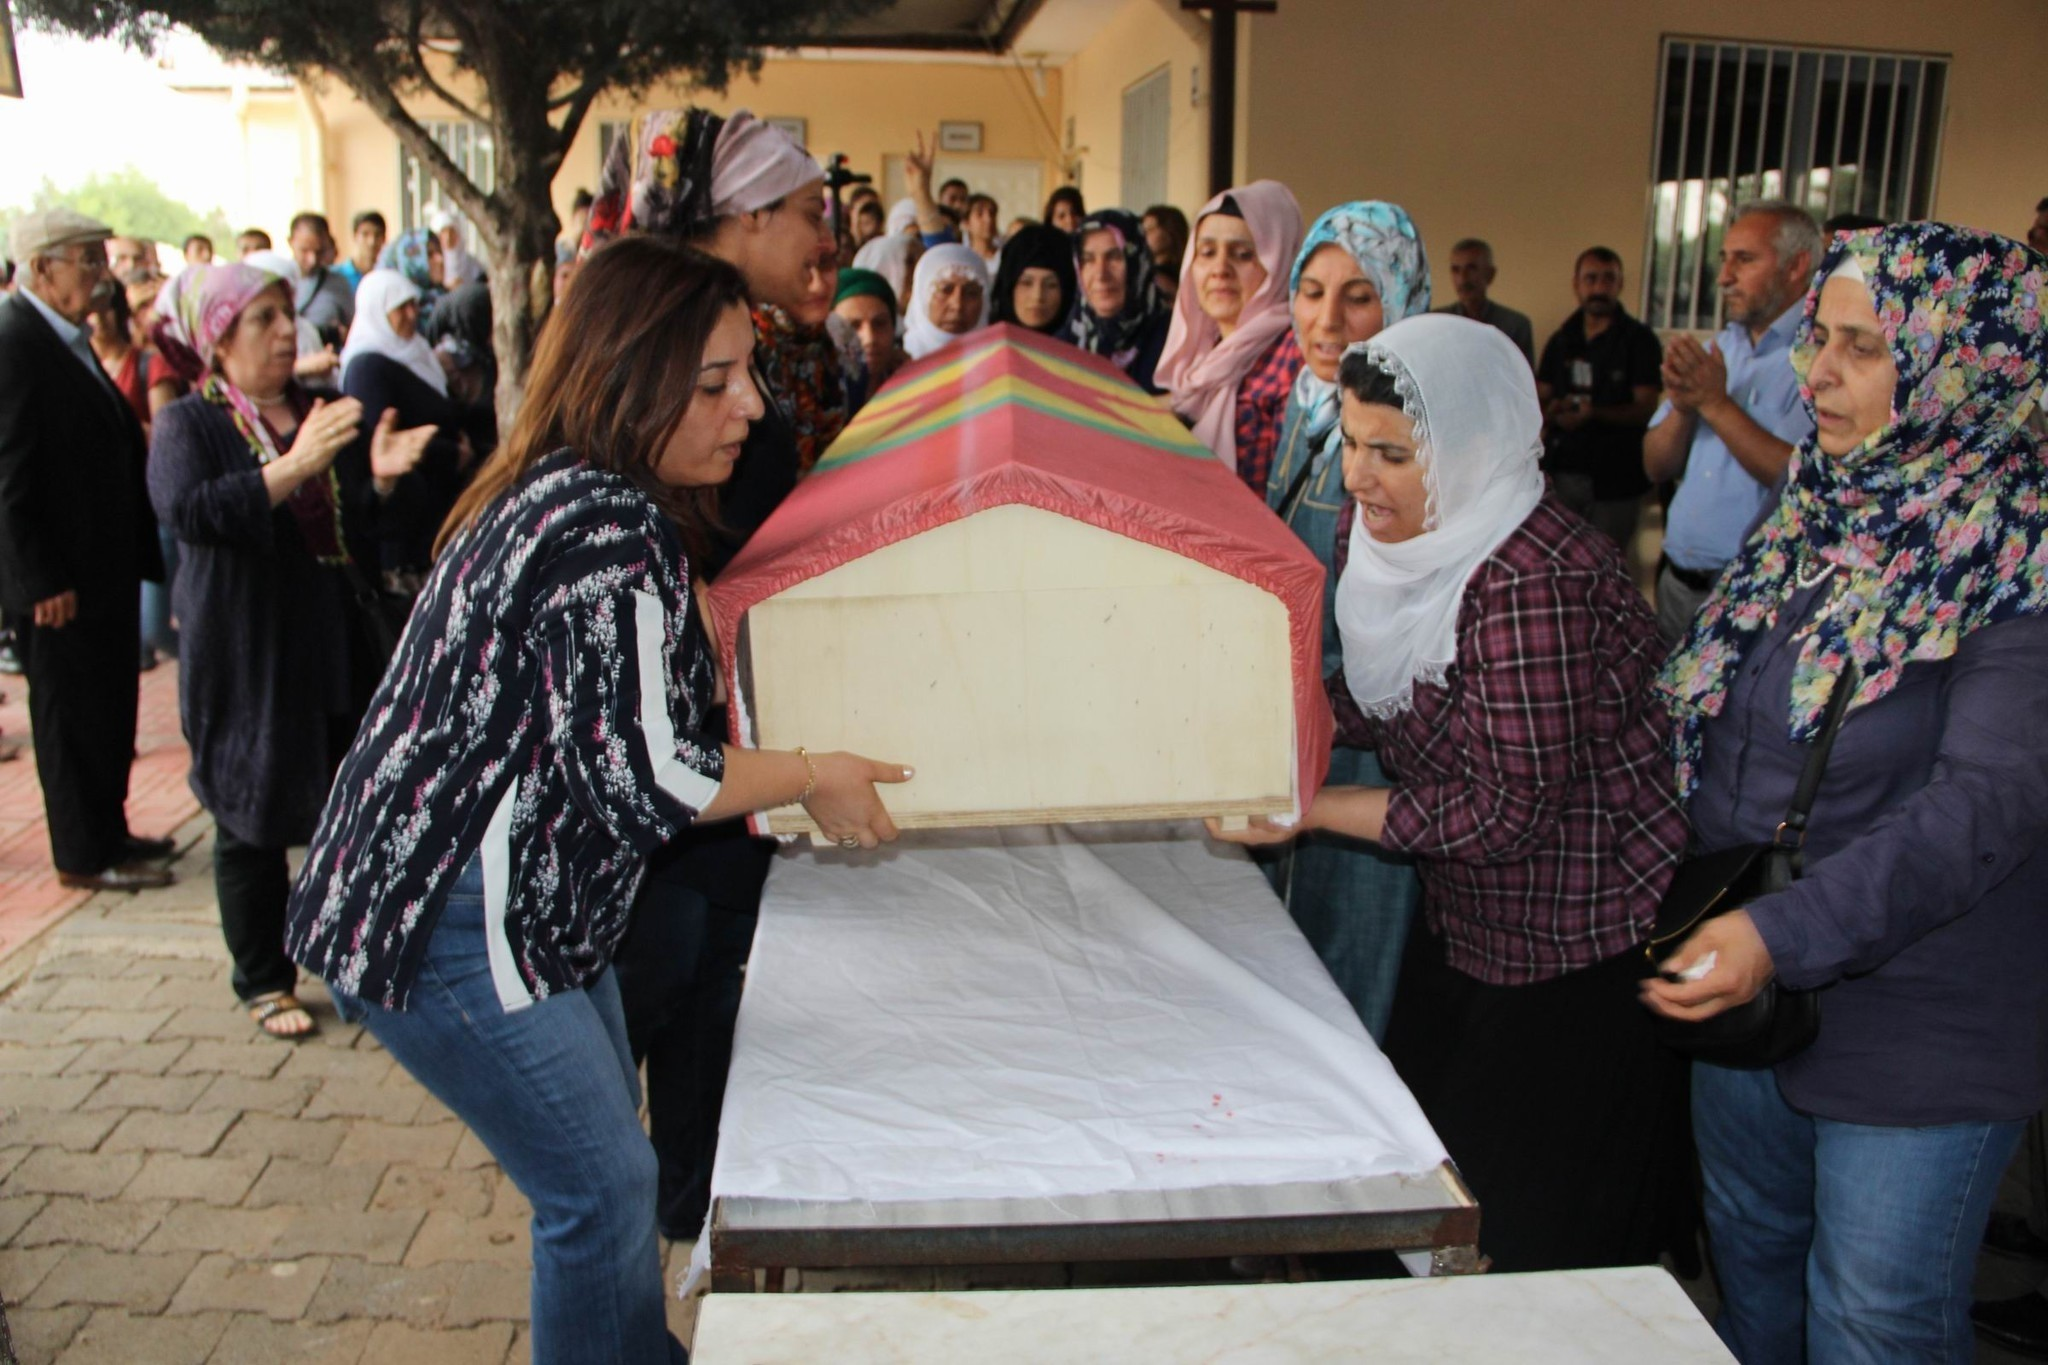 The co-mayor of Kayapu0131nar municipality in Diyarbaku0131r, Fatma Aru015fimet, is seen on the left carrying the coffin draped in a PKK flag.